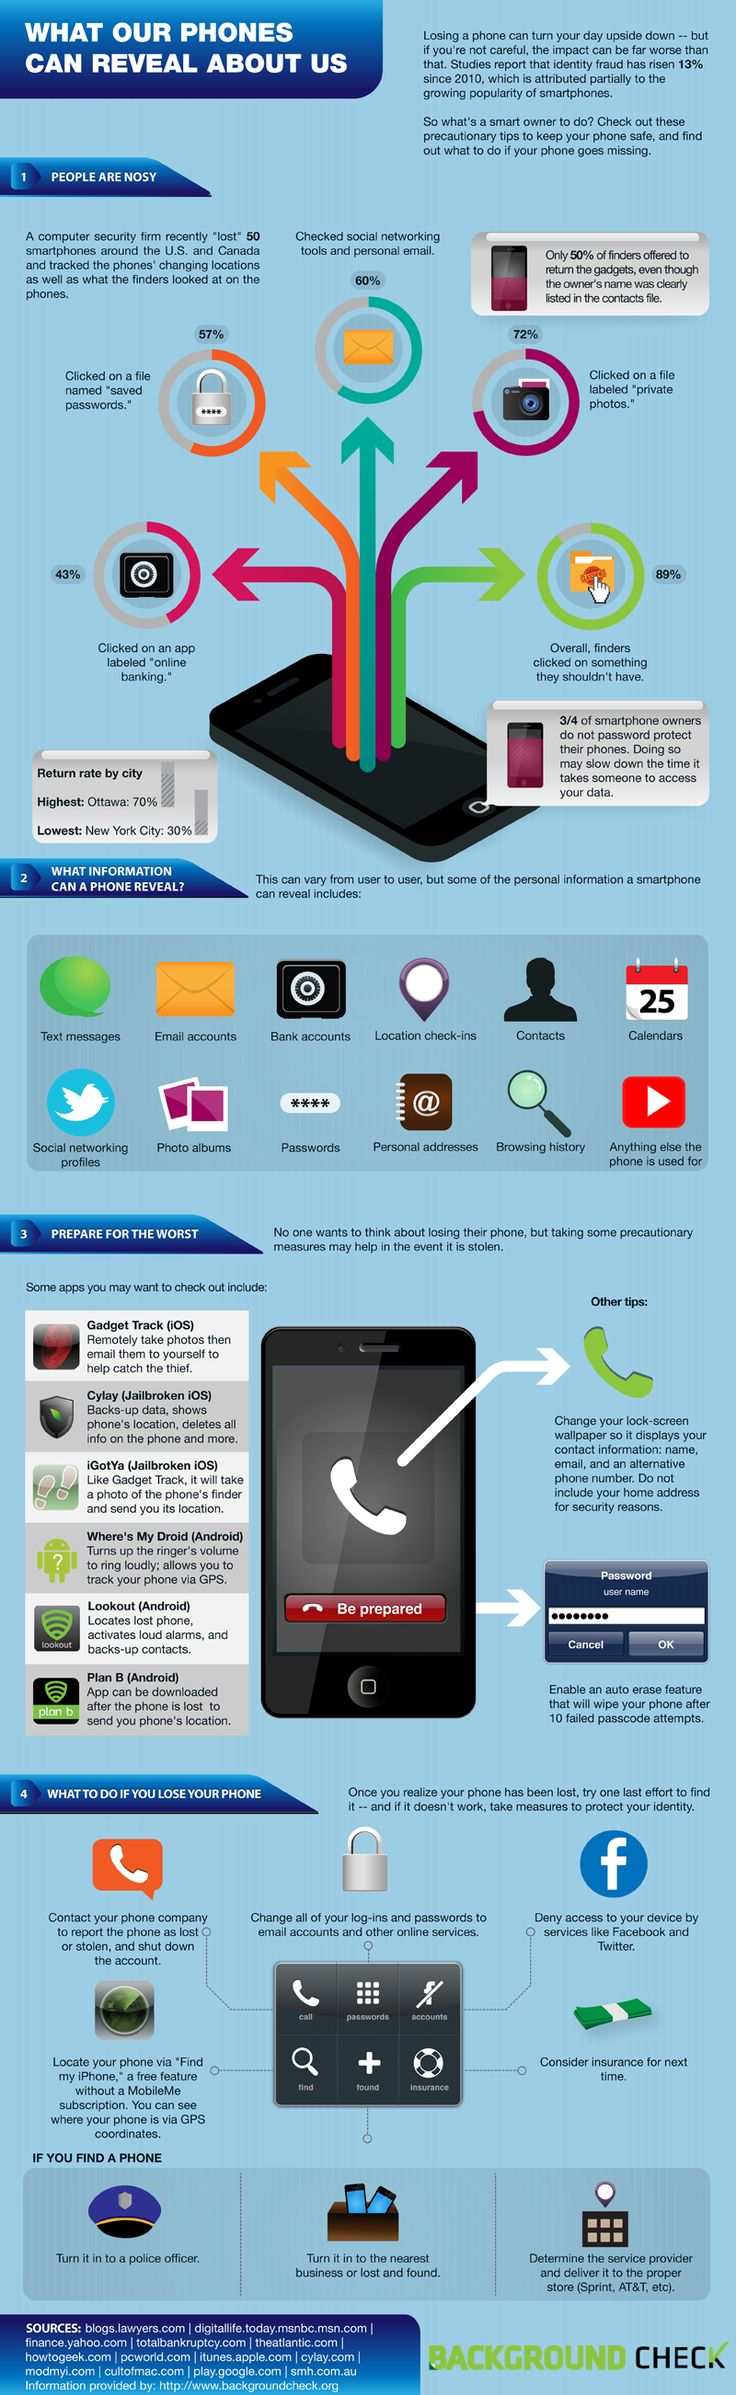 #Infographic shows how losing your phone can cost more than losing your wallet